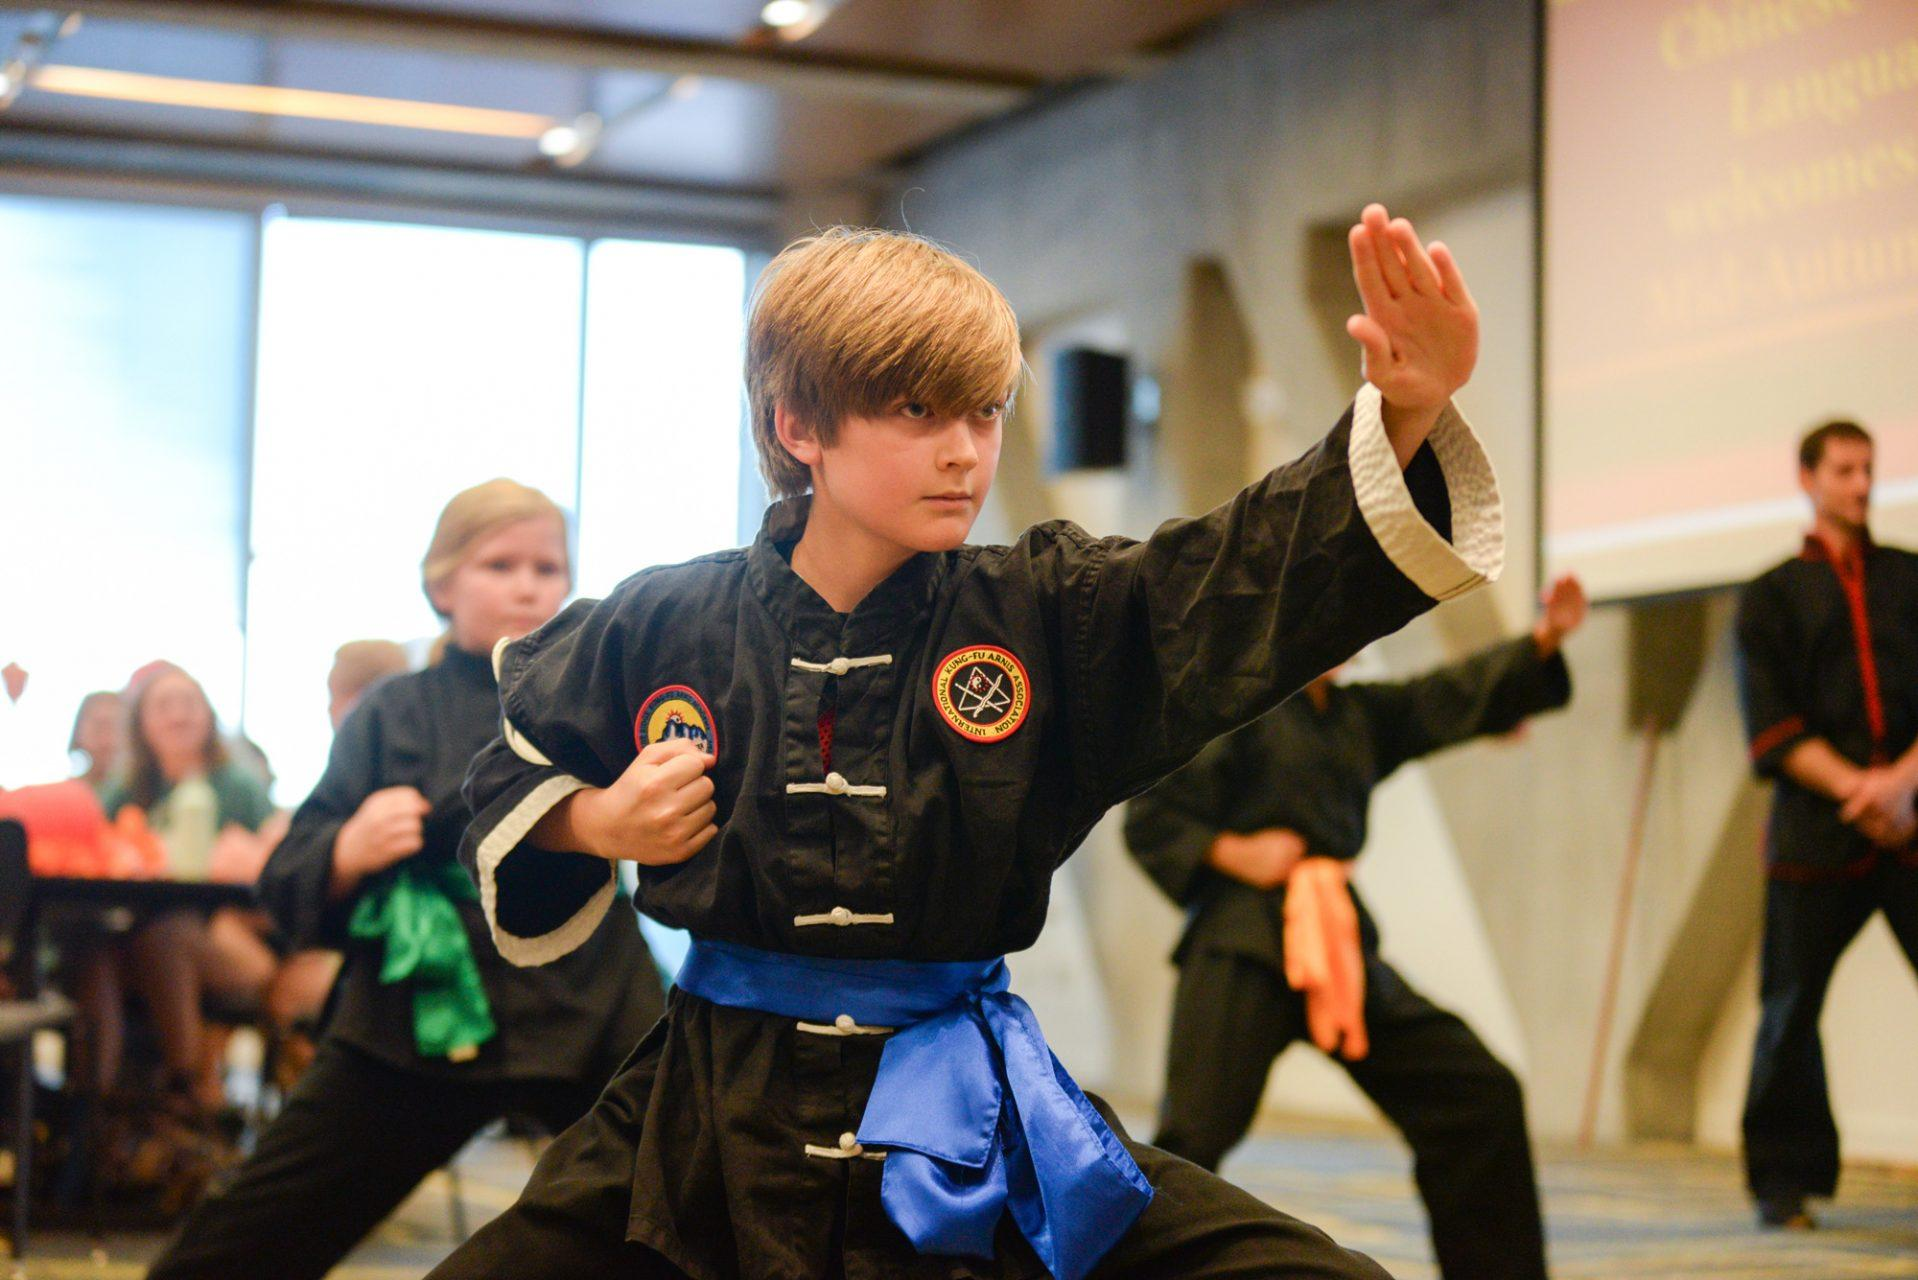 Blue Ridge Kung Fu Academy presents martial arts forms and exercises at the Mid-Autumn Festival on Tuesday, Sept. 26.